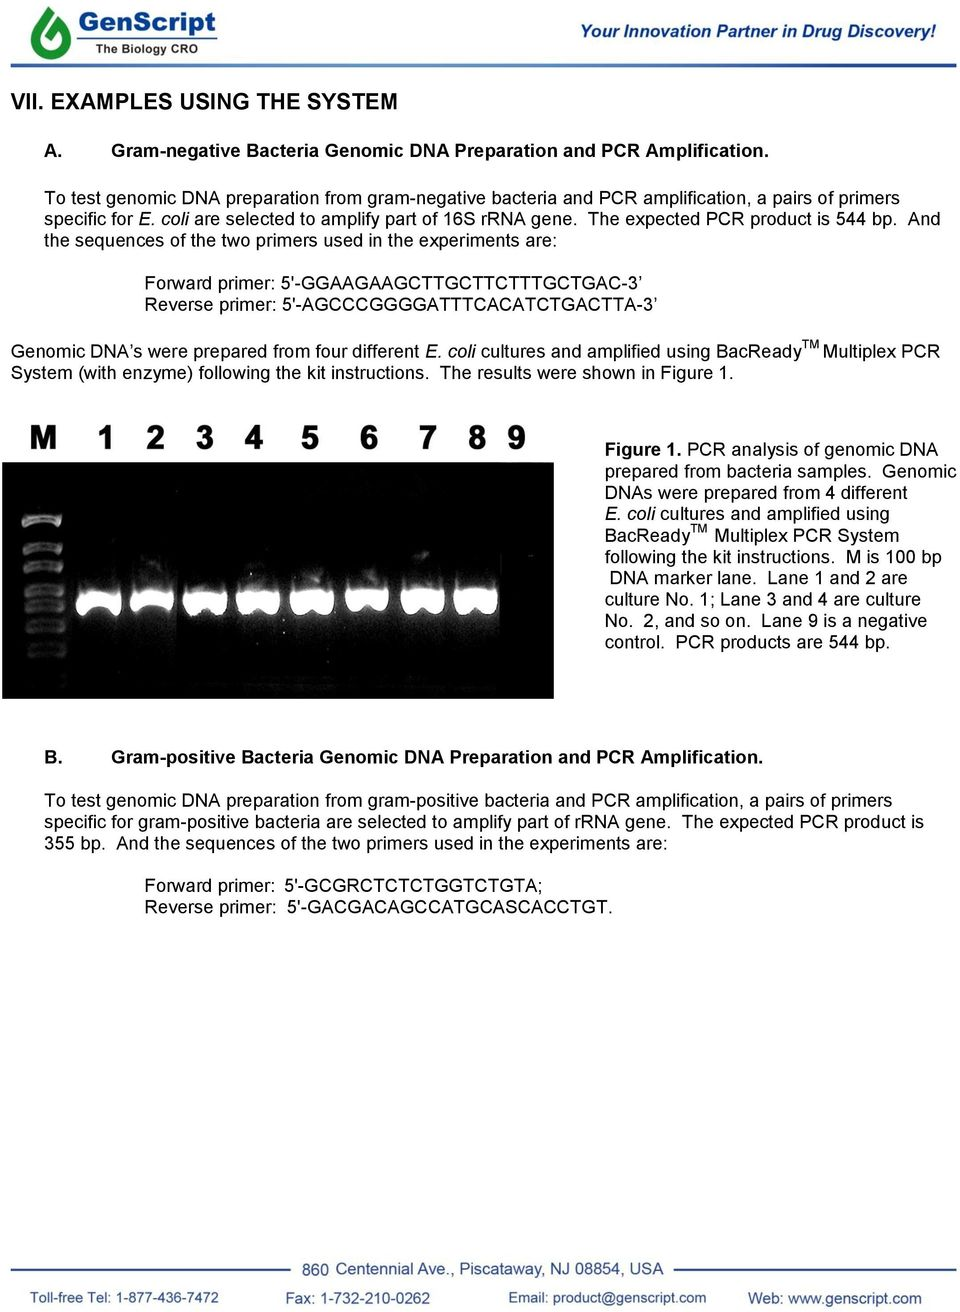 The expected PCR product is 544 bp.